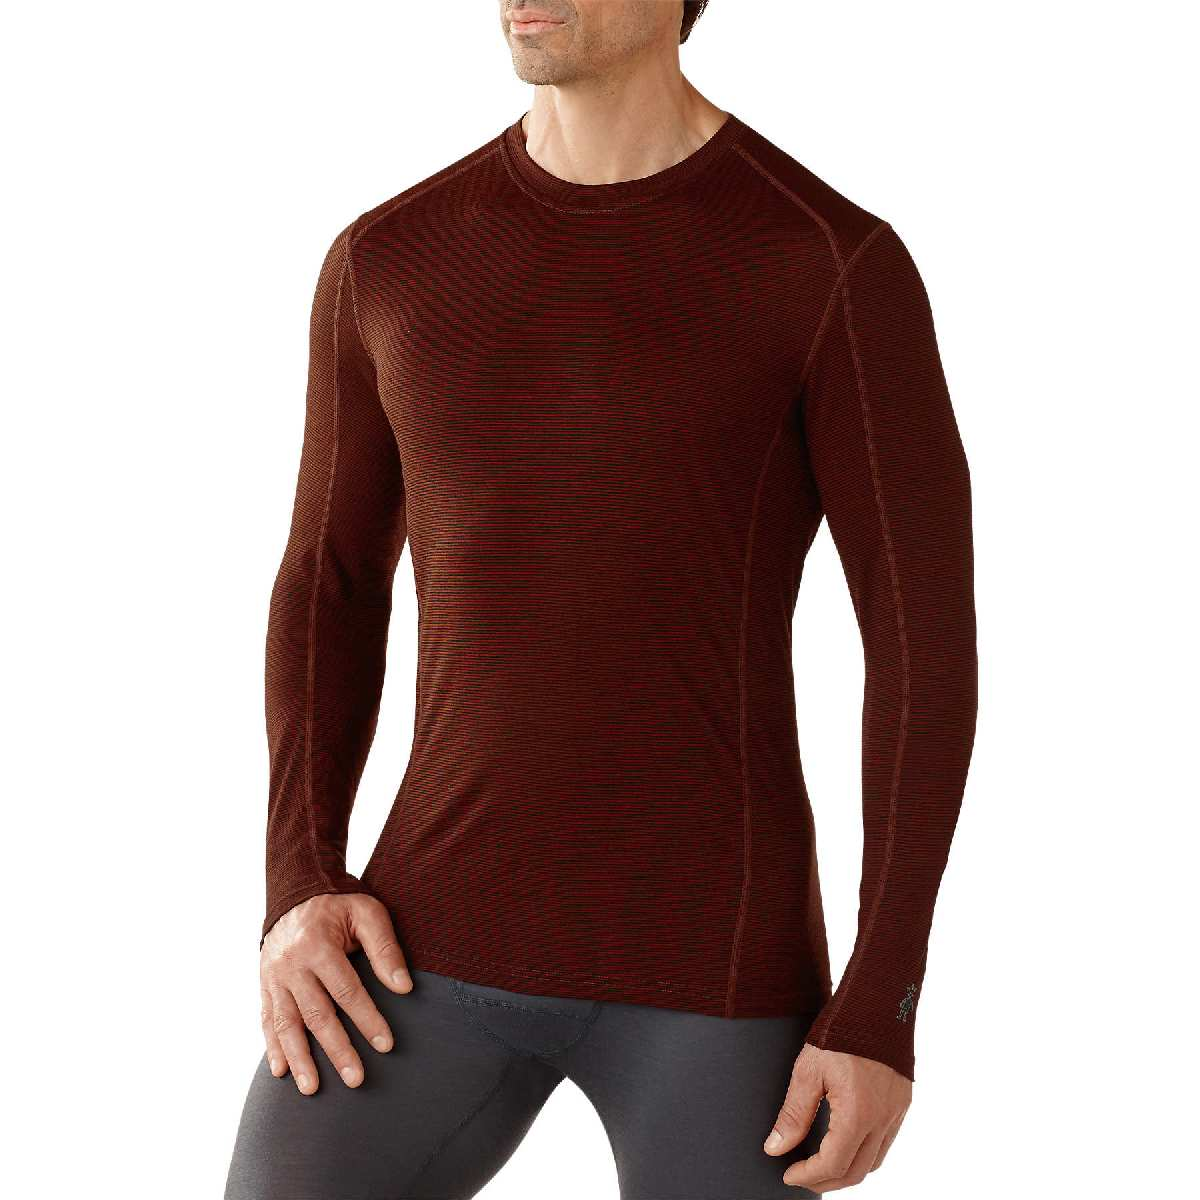 SmartWool NTS Micro 150 Pattern Crew Long Sleeve Base Layer Men's Size L Cinnamon U.S.A. & Canada